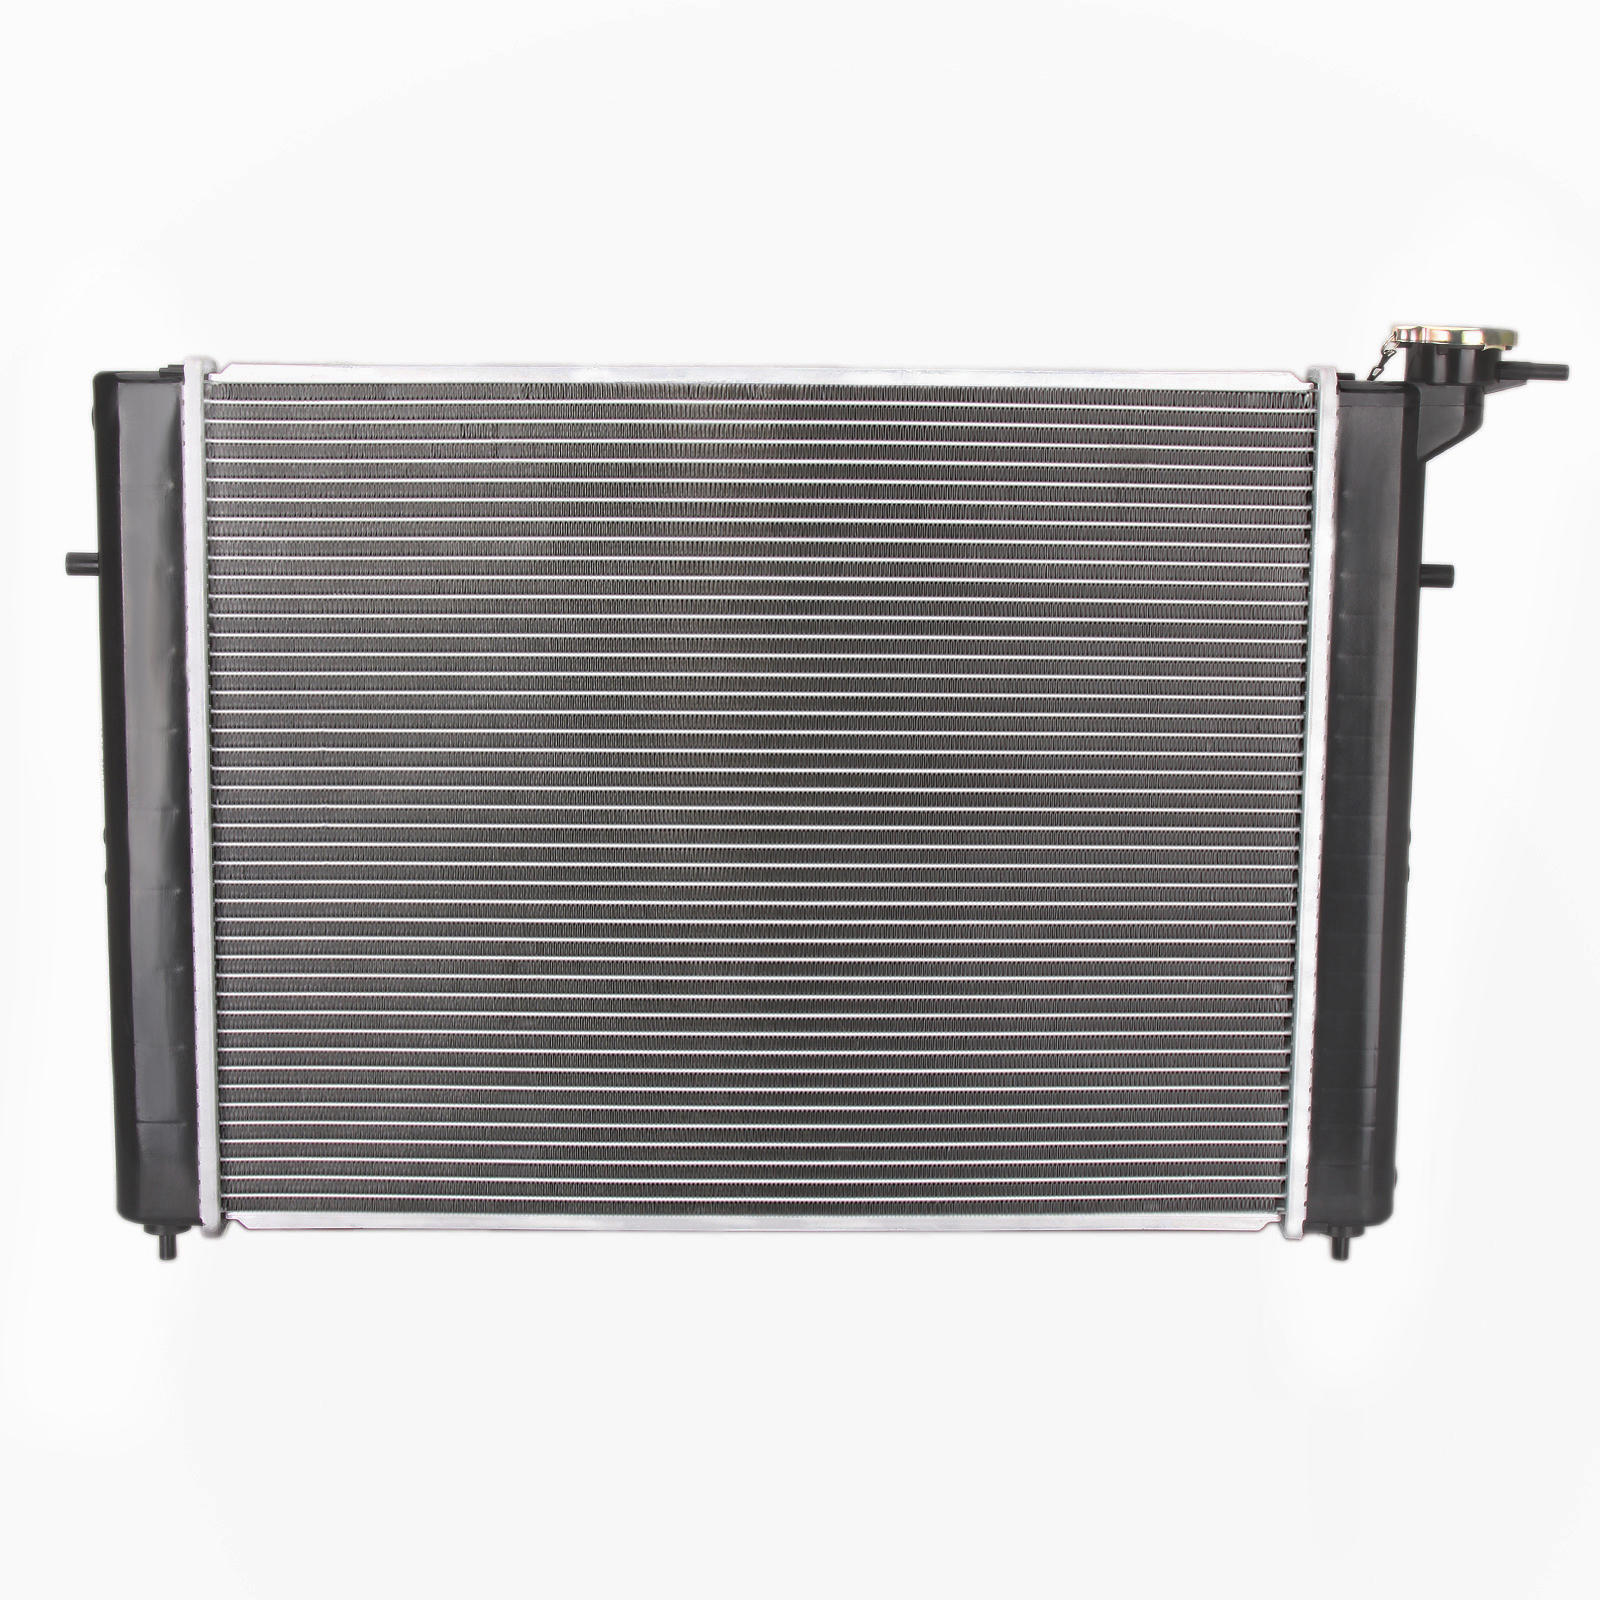 Car Premium Radiators for Holden Commodore VN VG VP VR VS Series V6 Engine Auto/Manual